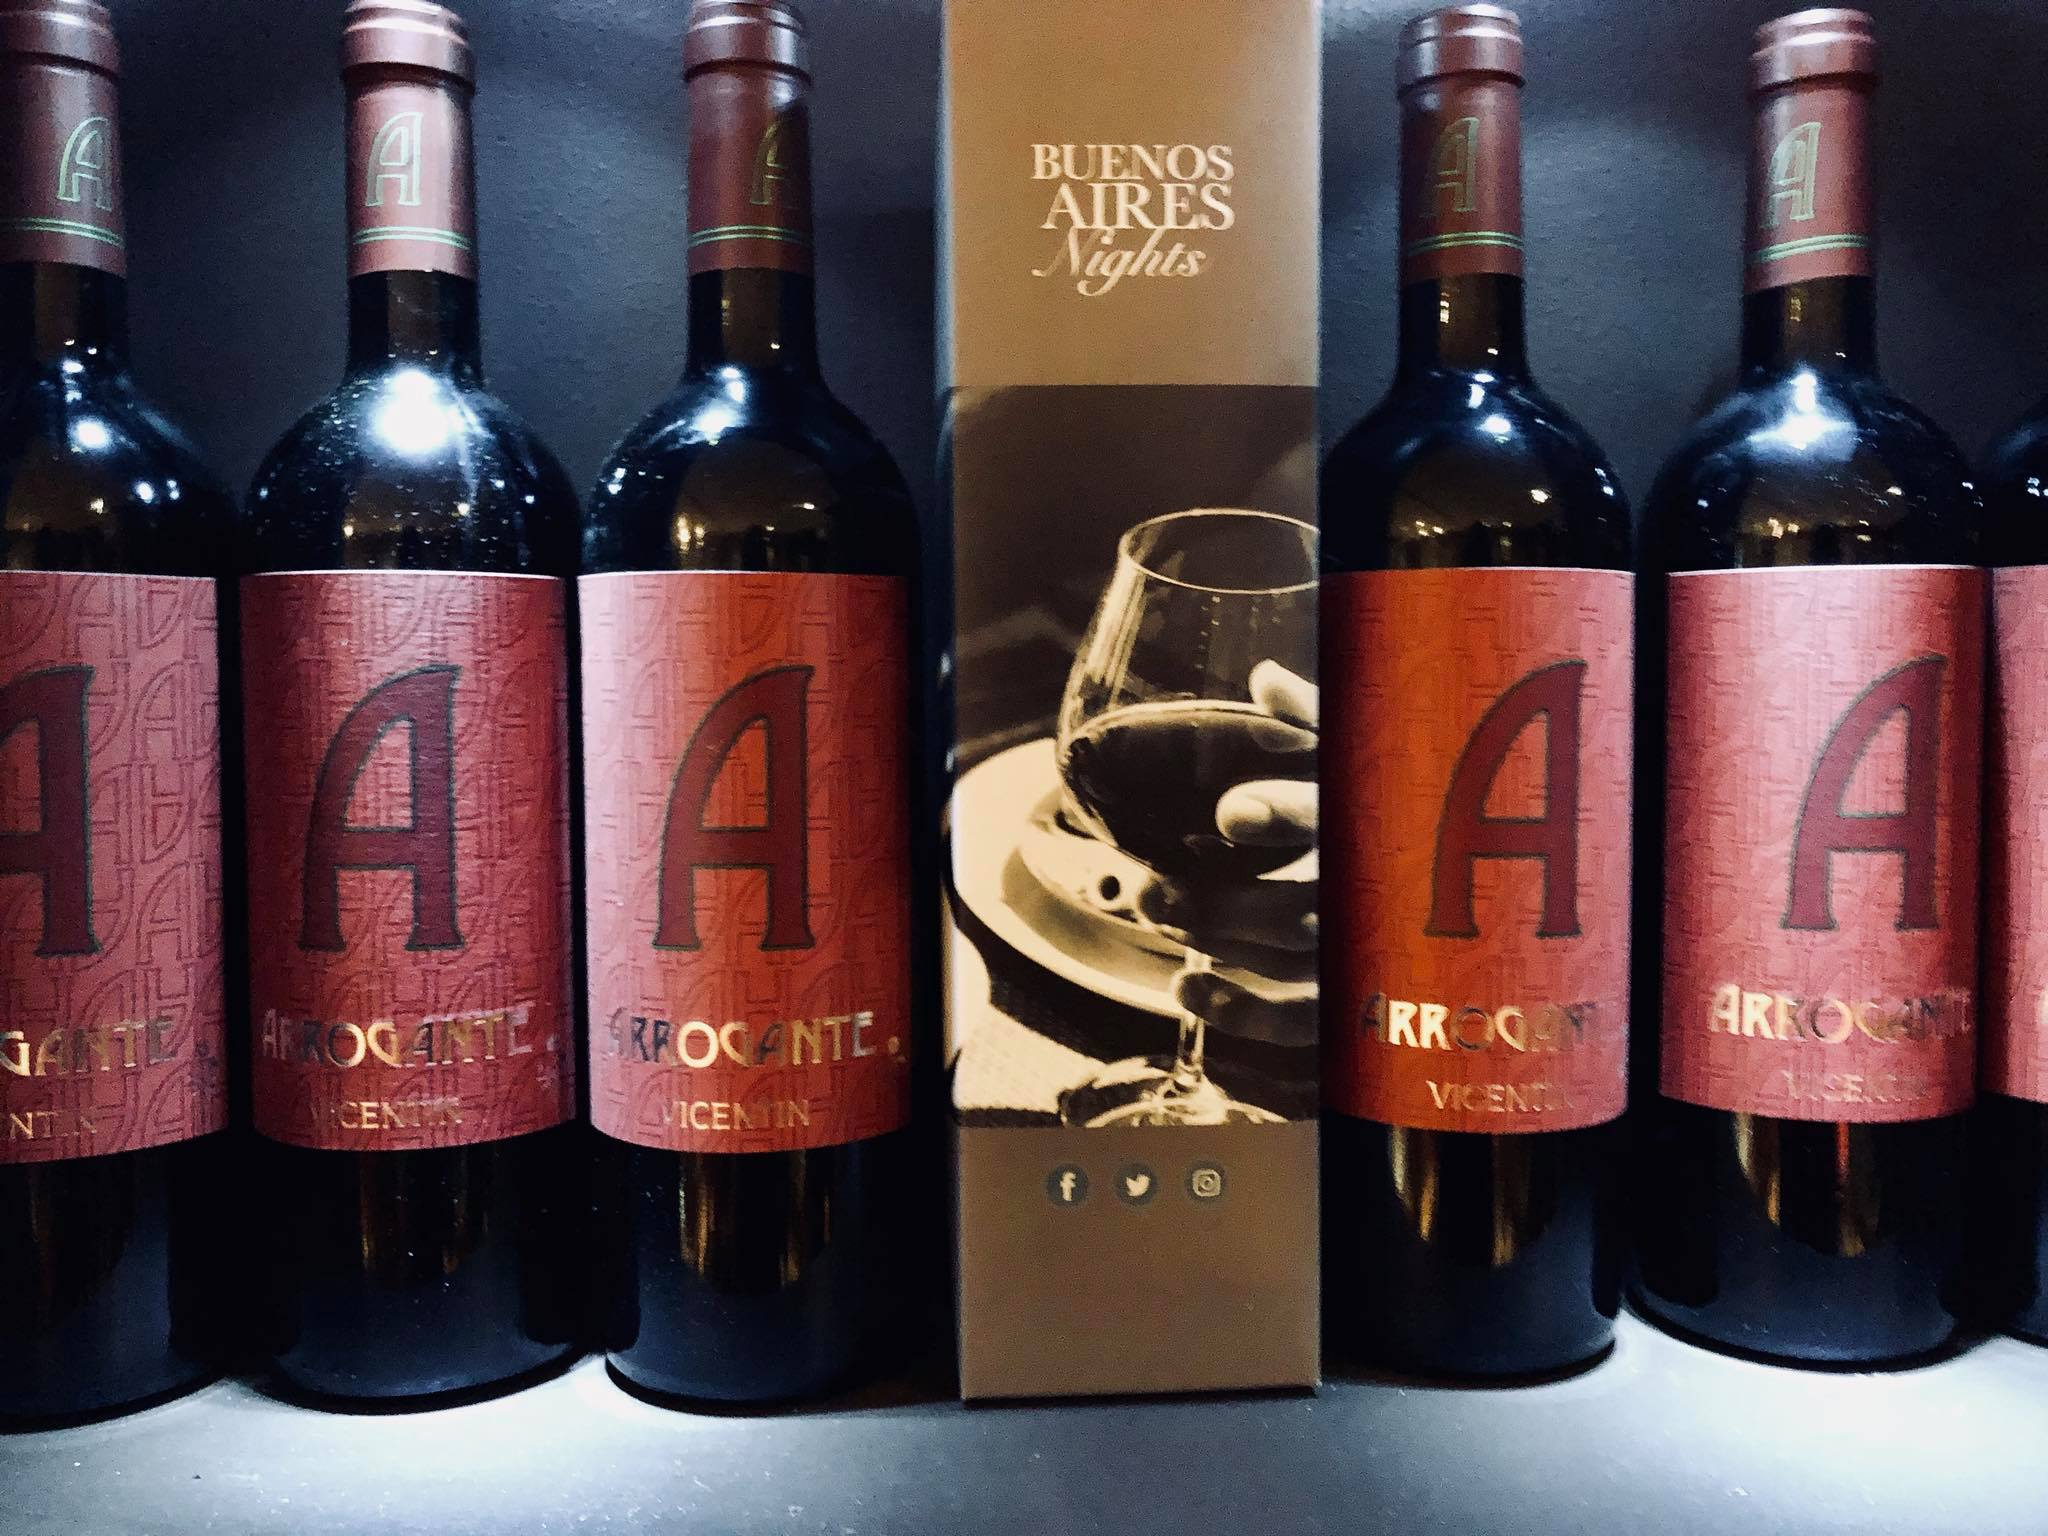 Argentinian Wines Malbec from